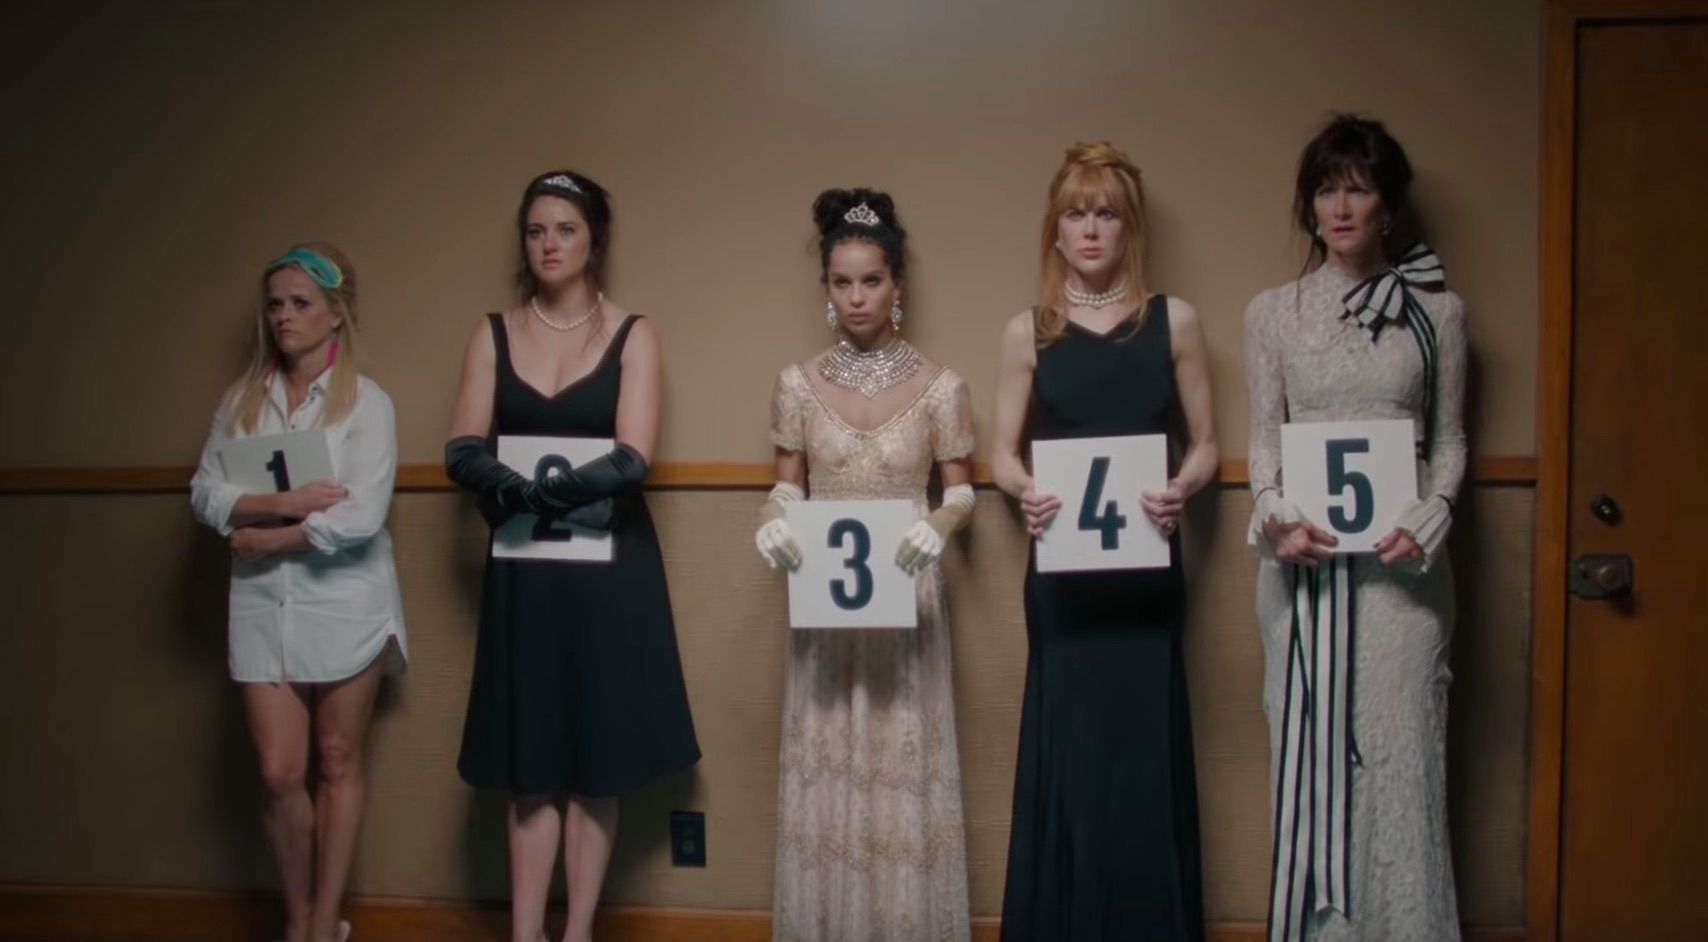 Watch New Trailer for Big Little Lies Season 2 | TV News